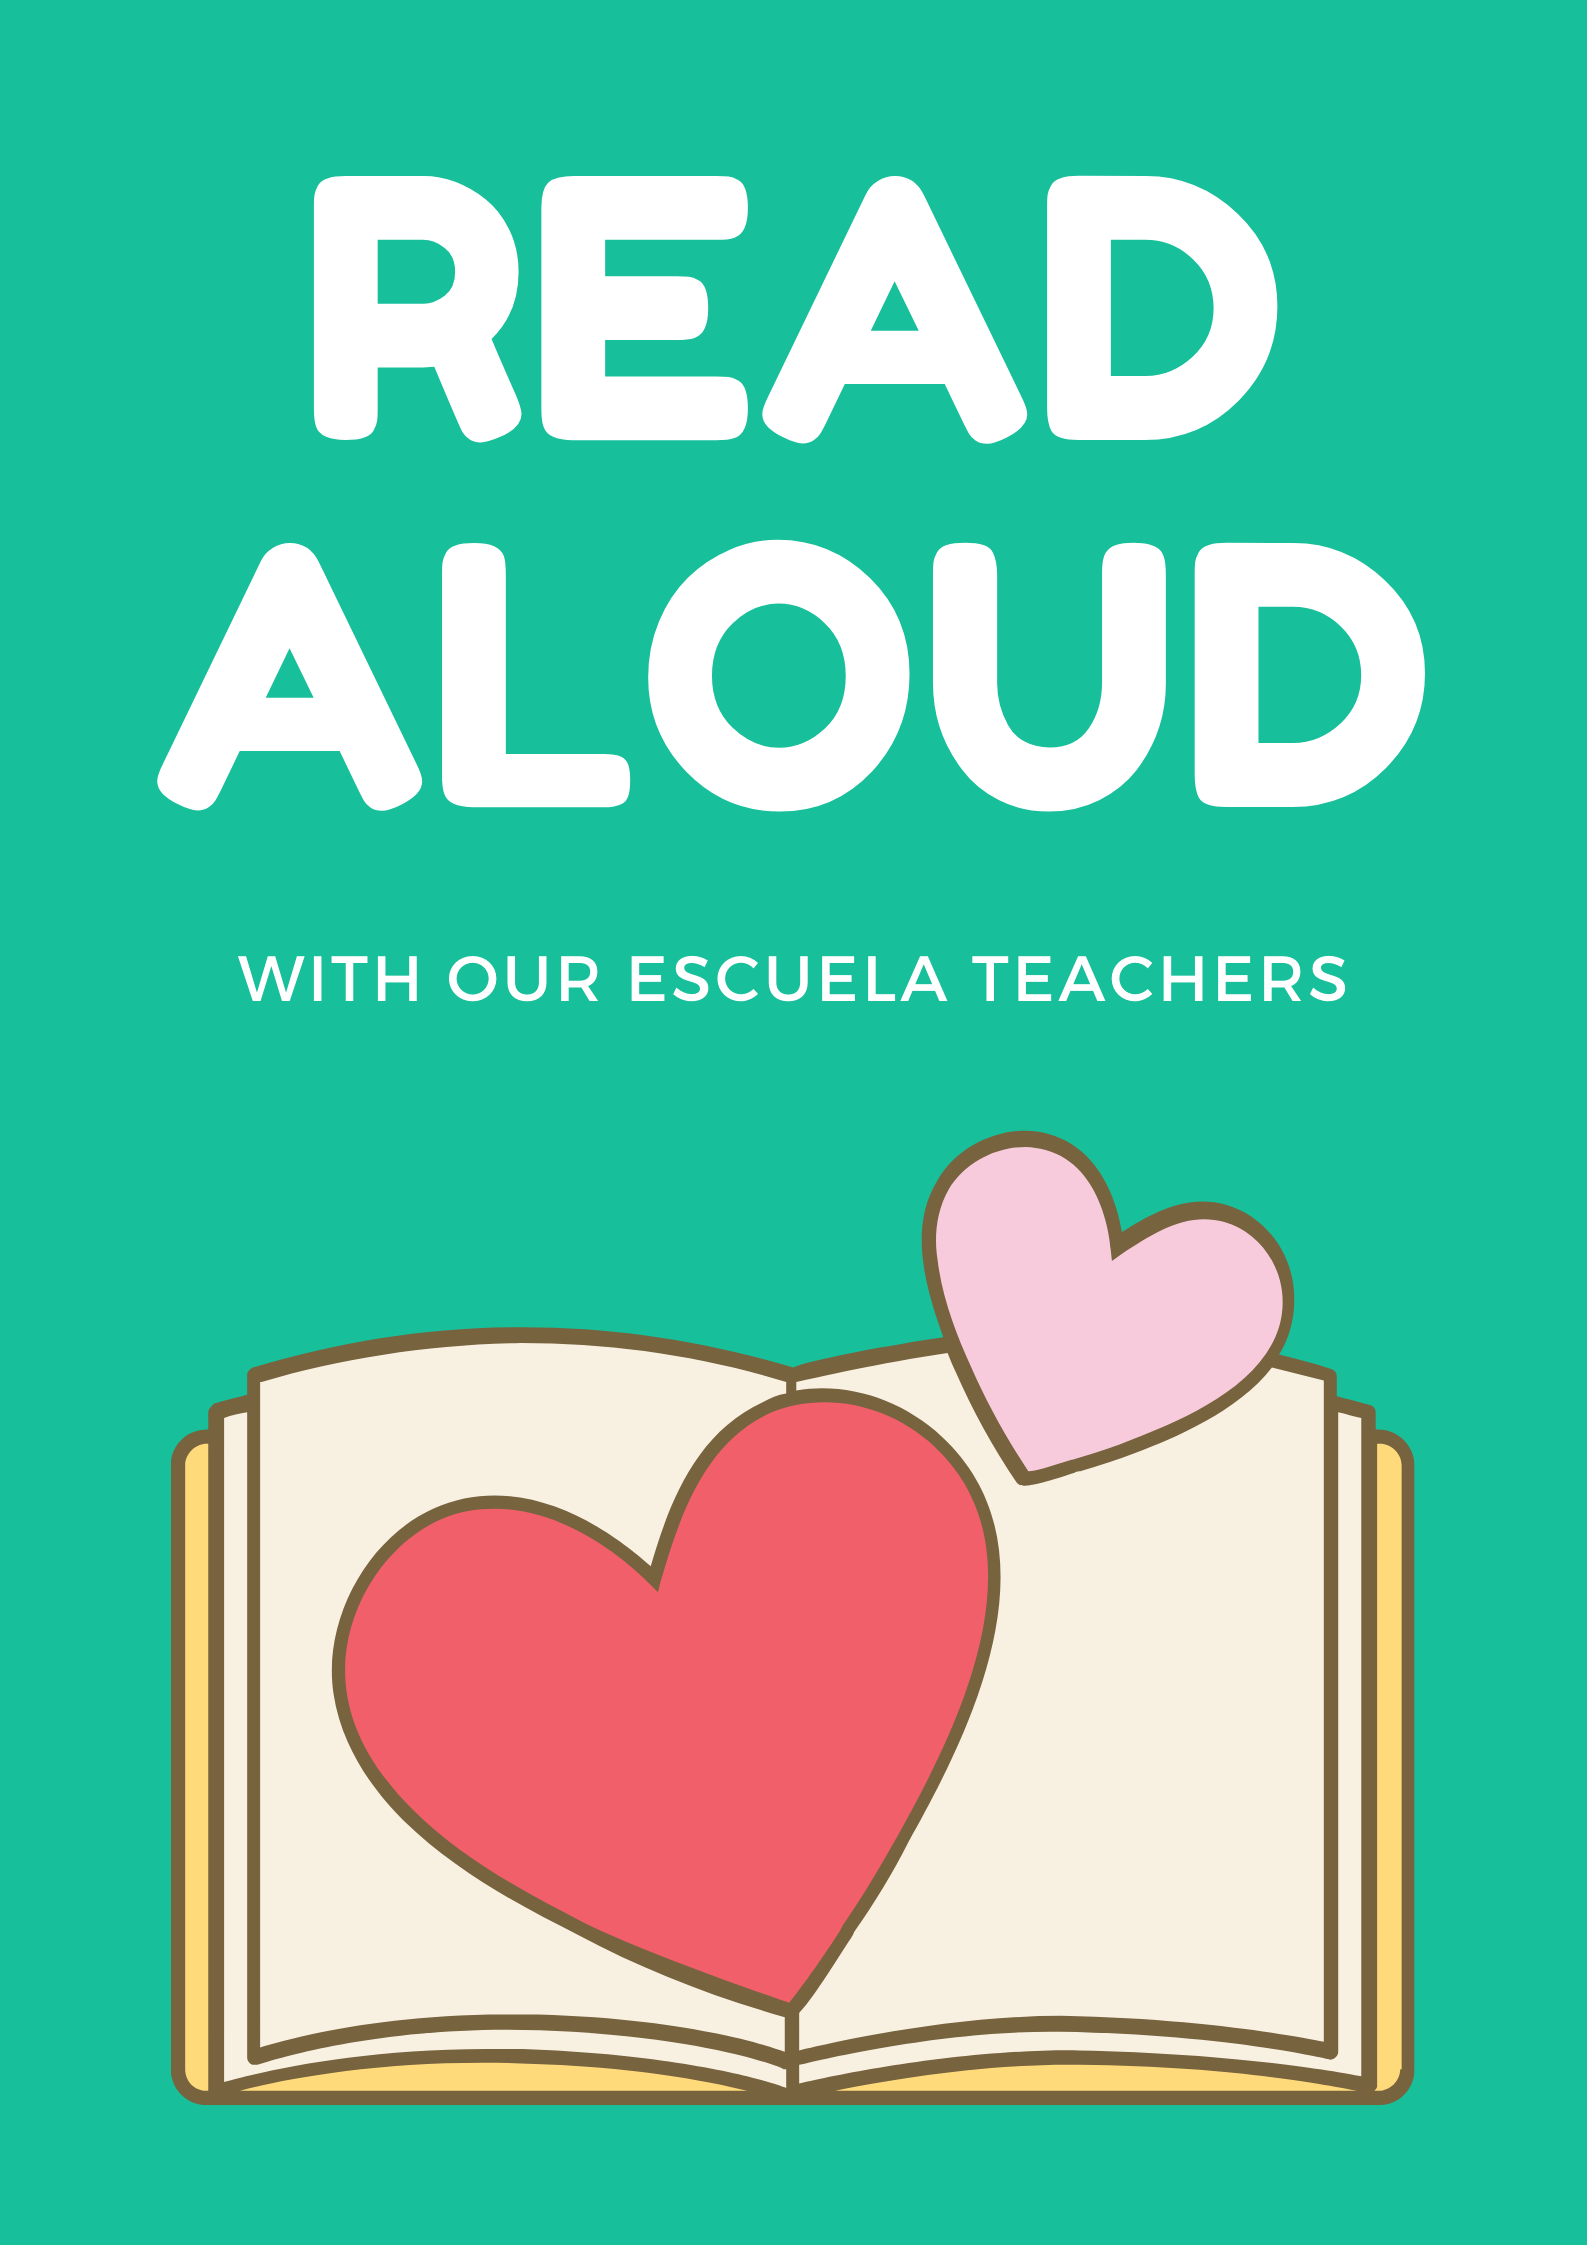 Read Aloud with Ms. Gretchen